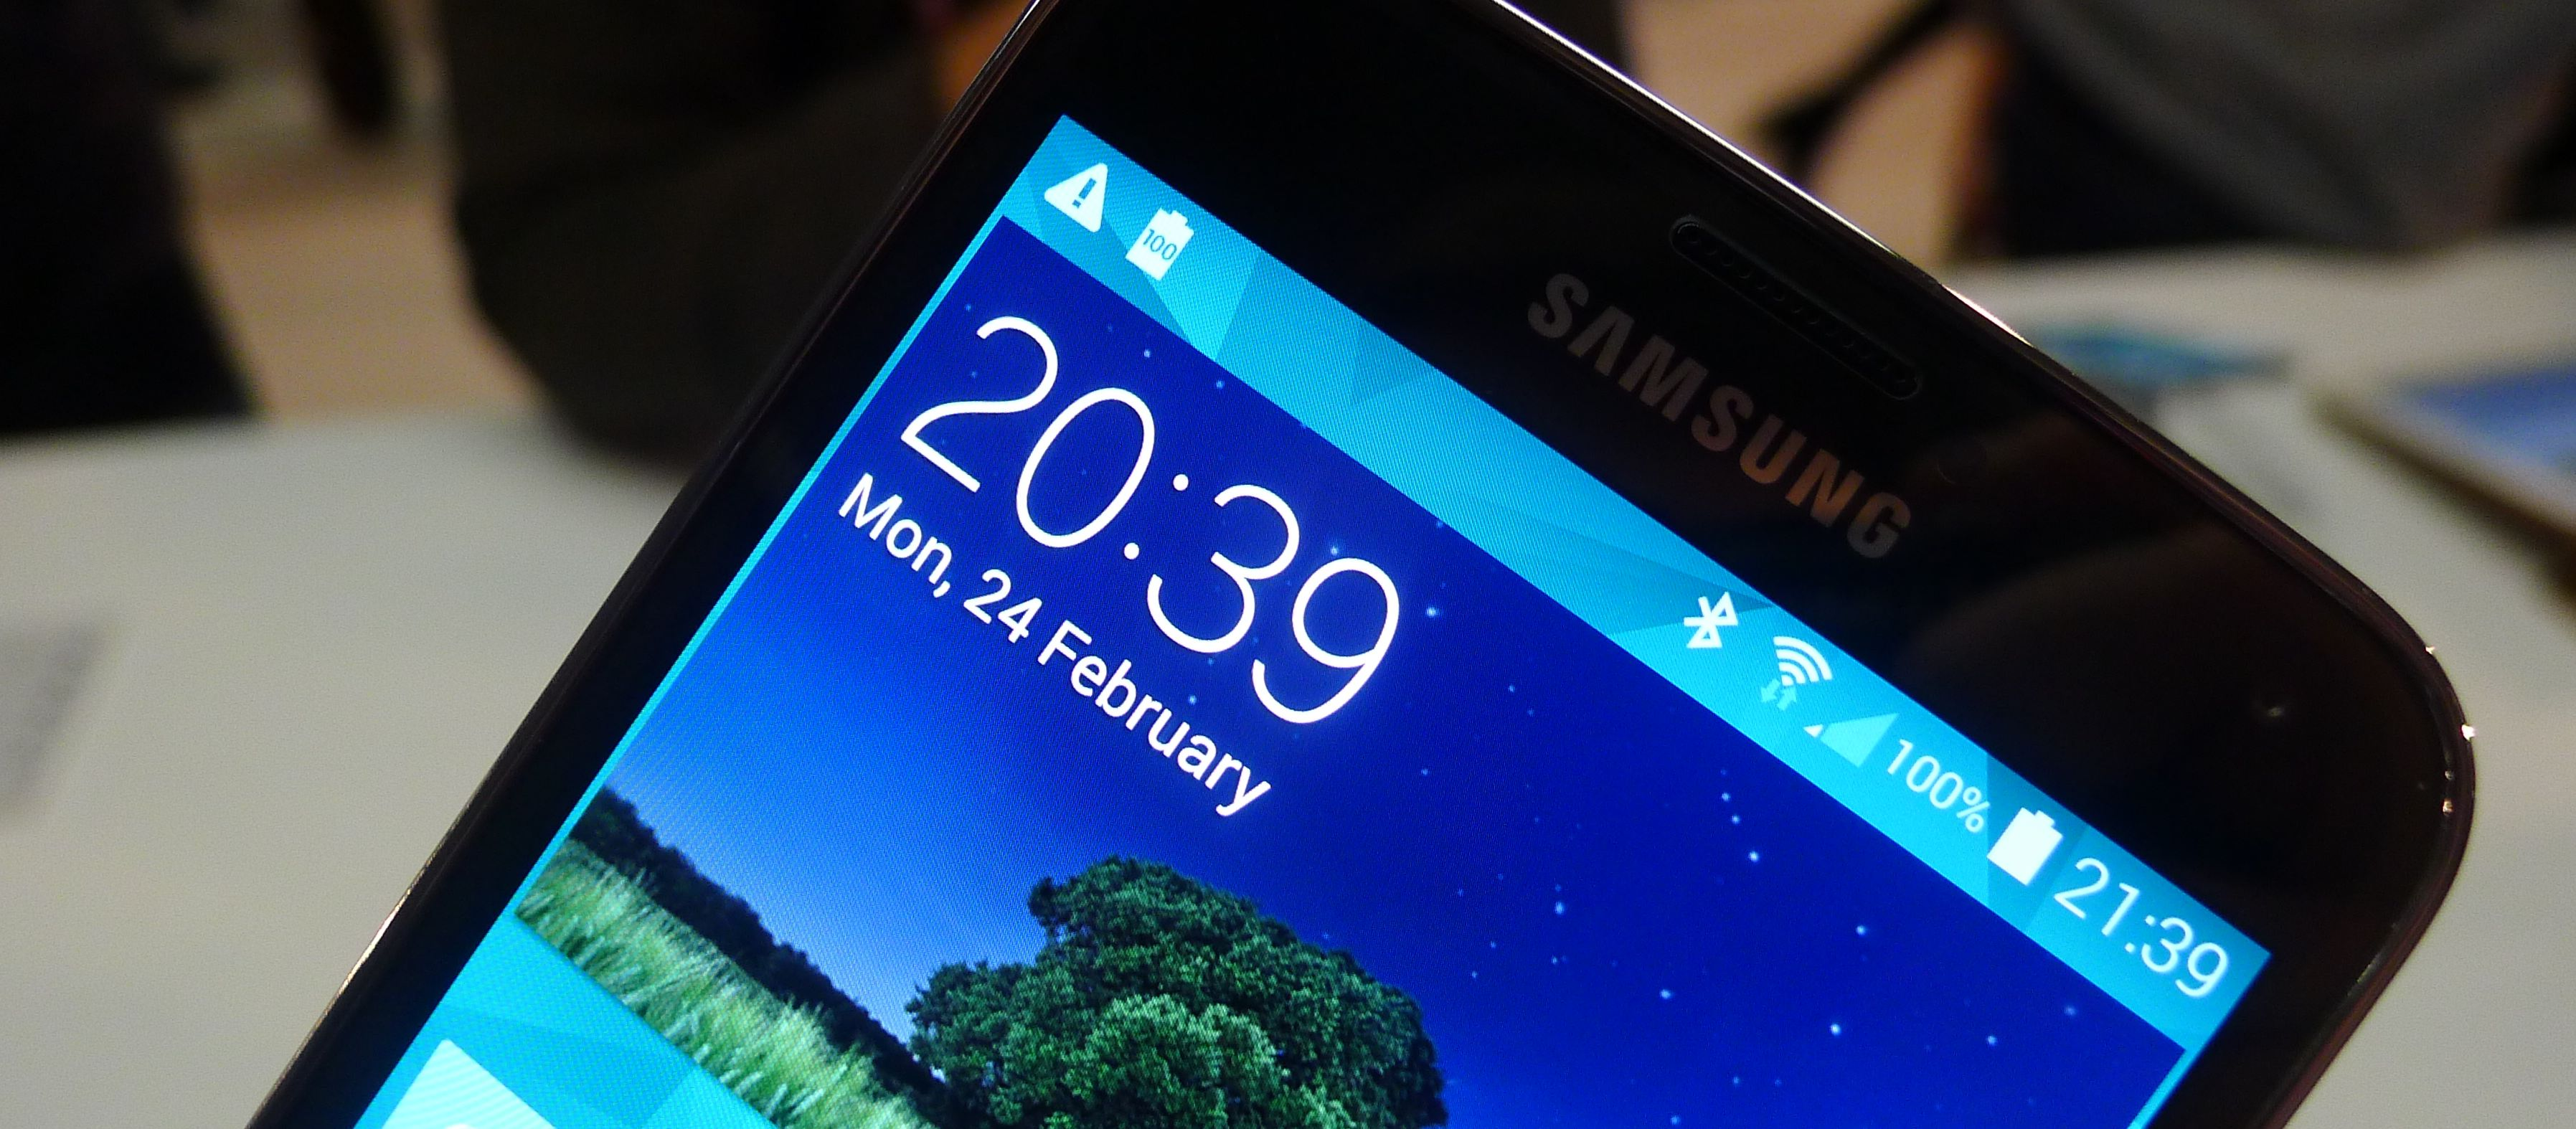 Samsung Galaxy S5 Preorders Start at AT&T on March 21 for $199